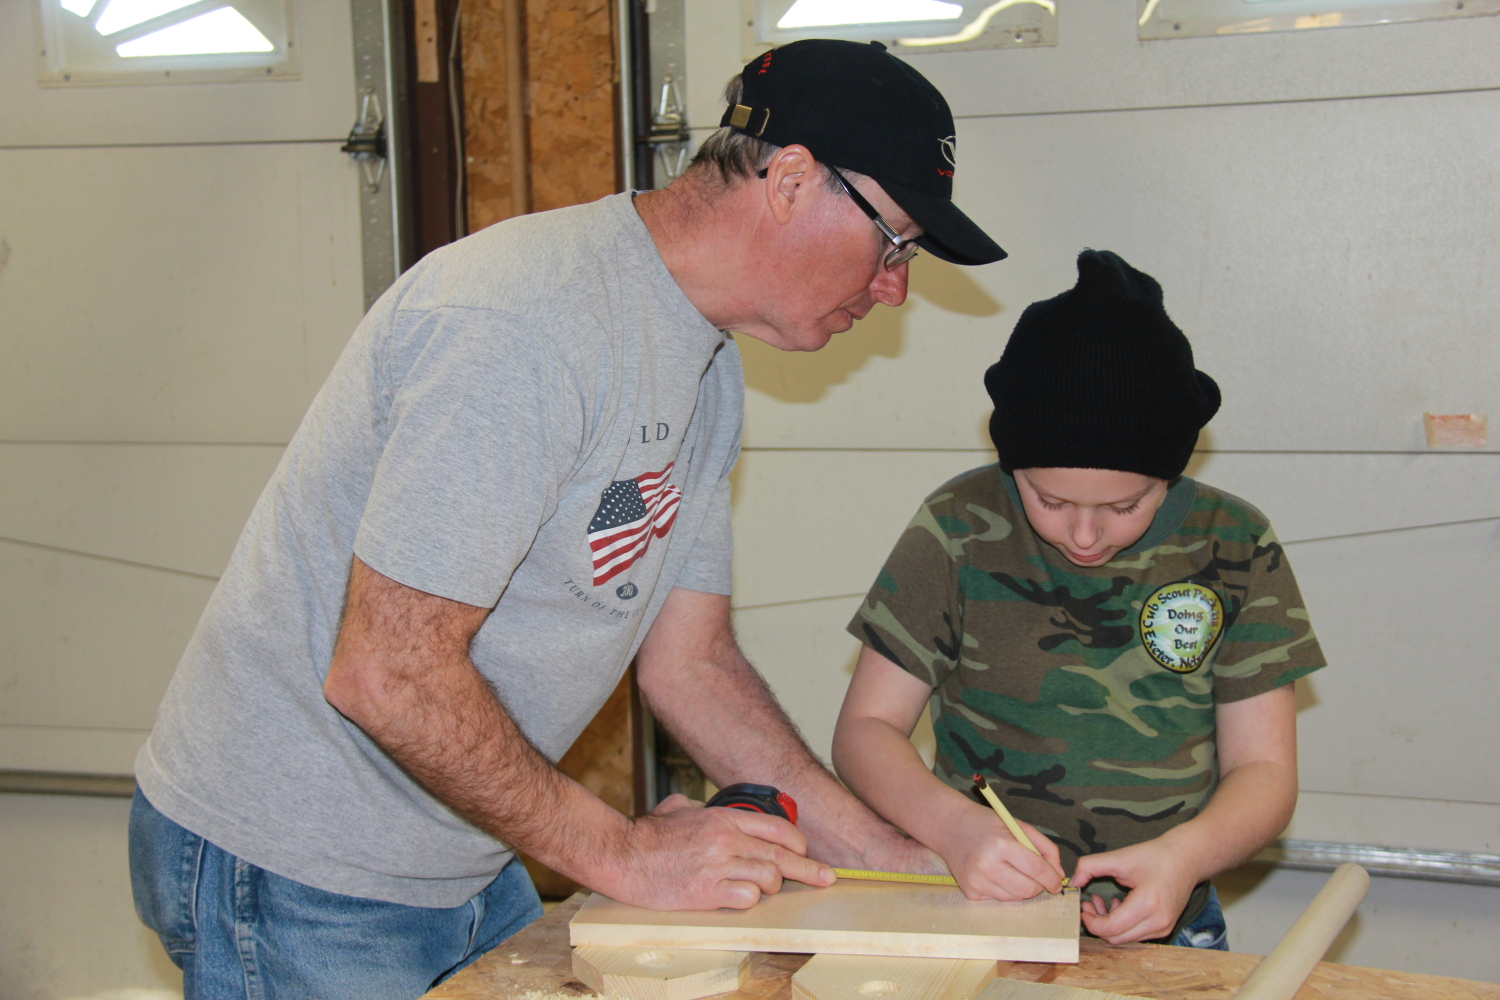 cub scout projects » easy cub scout woodworking projects, cool woodworking projects standing desk mechanism of injury i have drawn plans for many of the woodworking projects on this website.